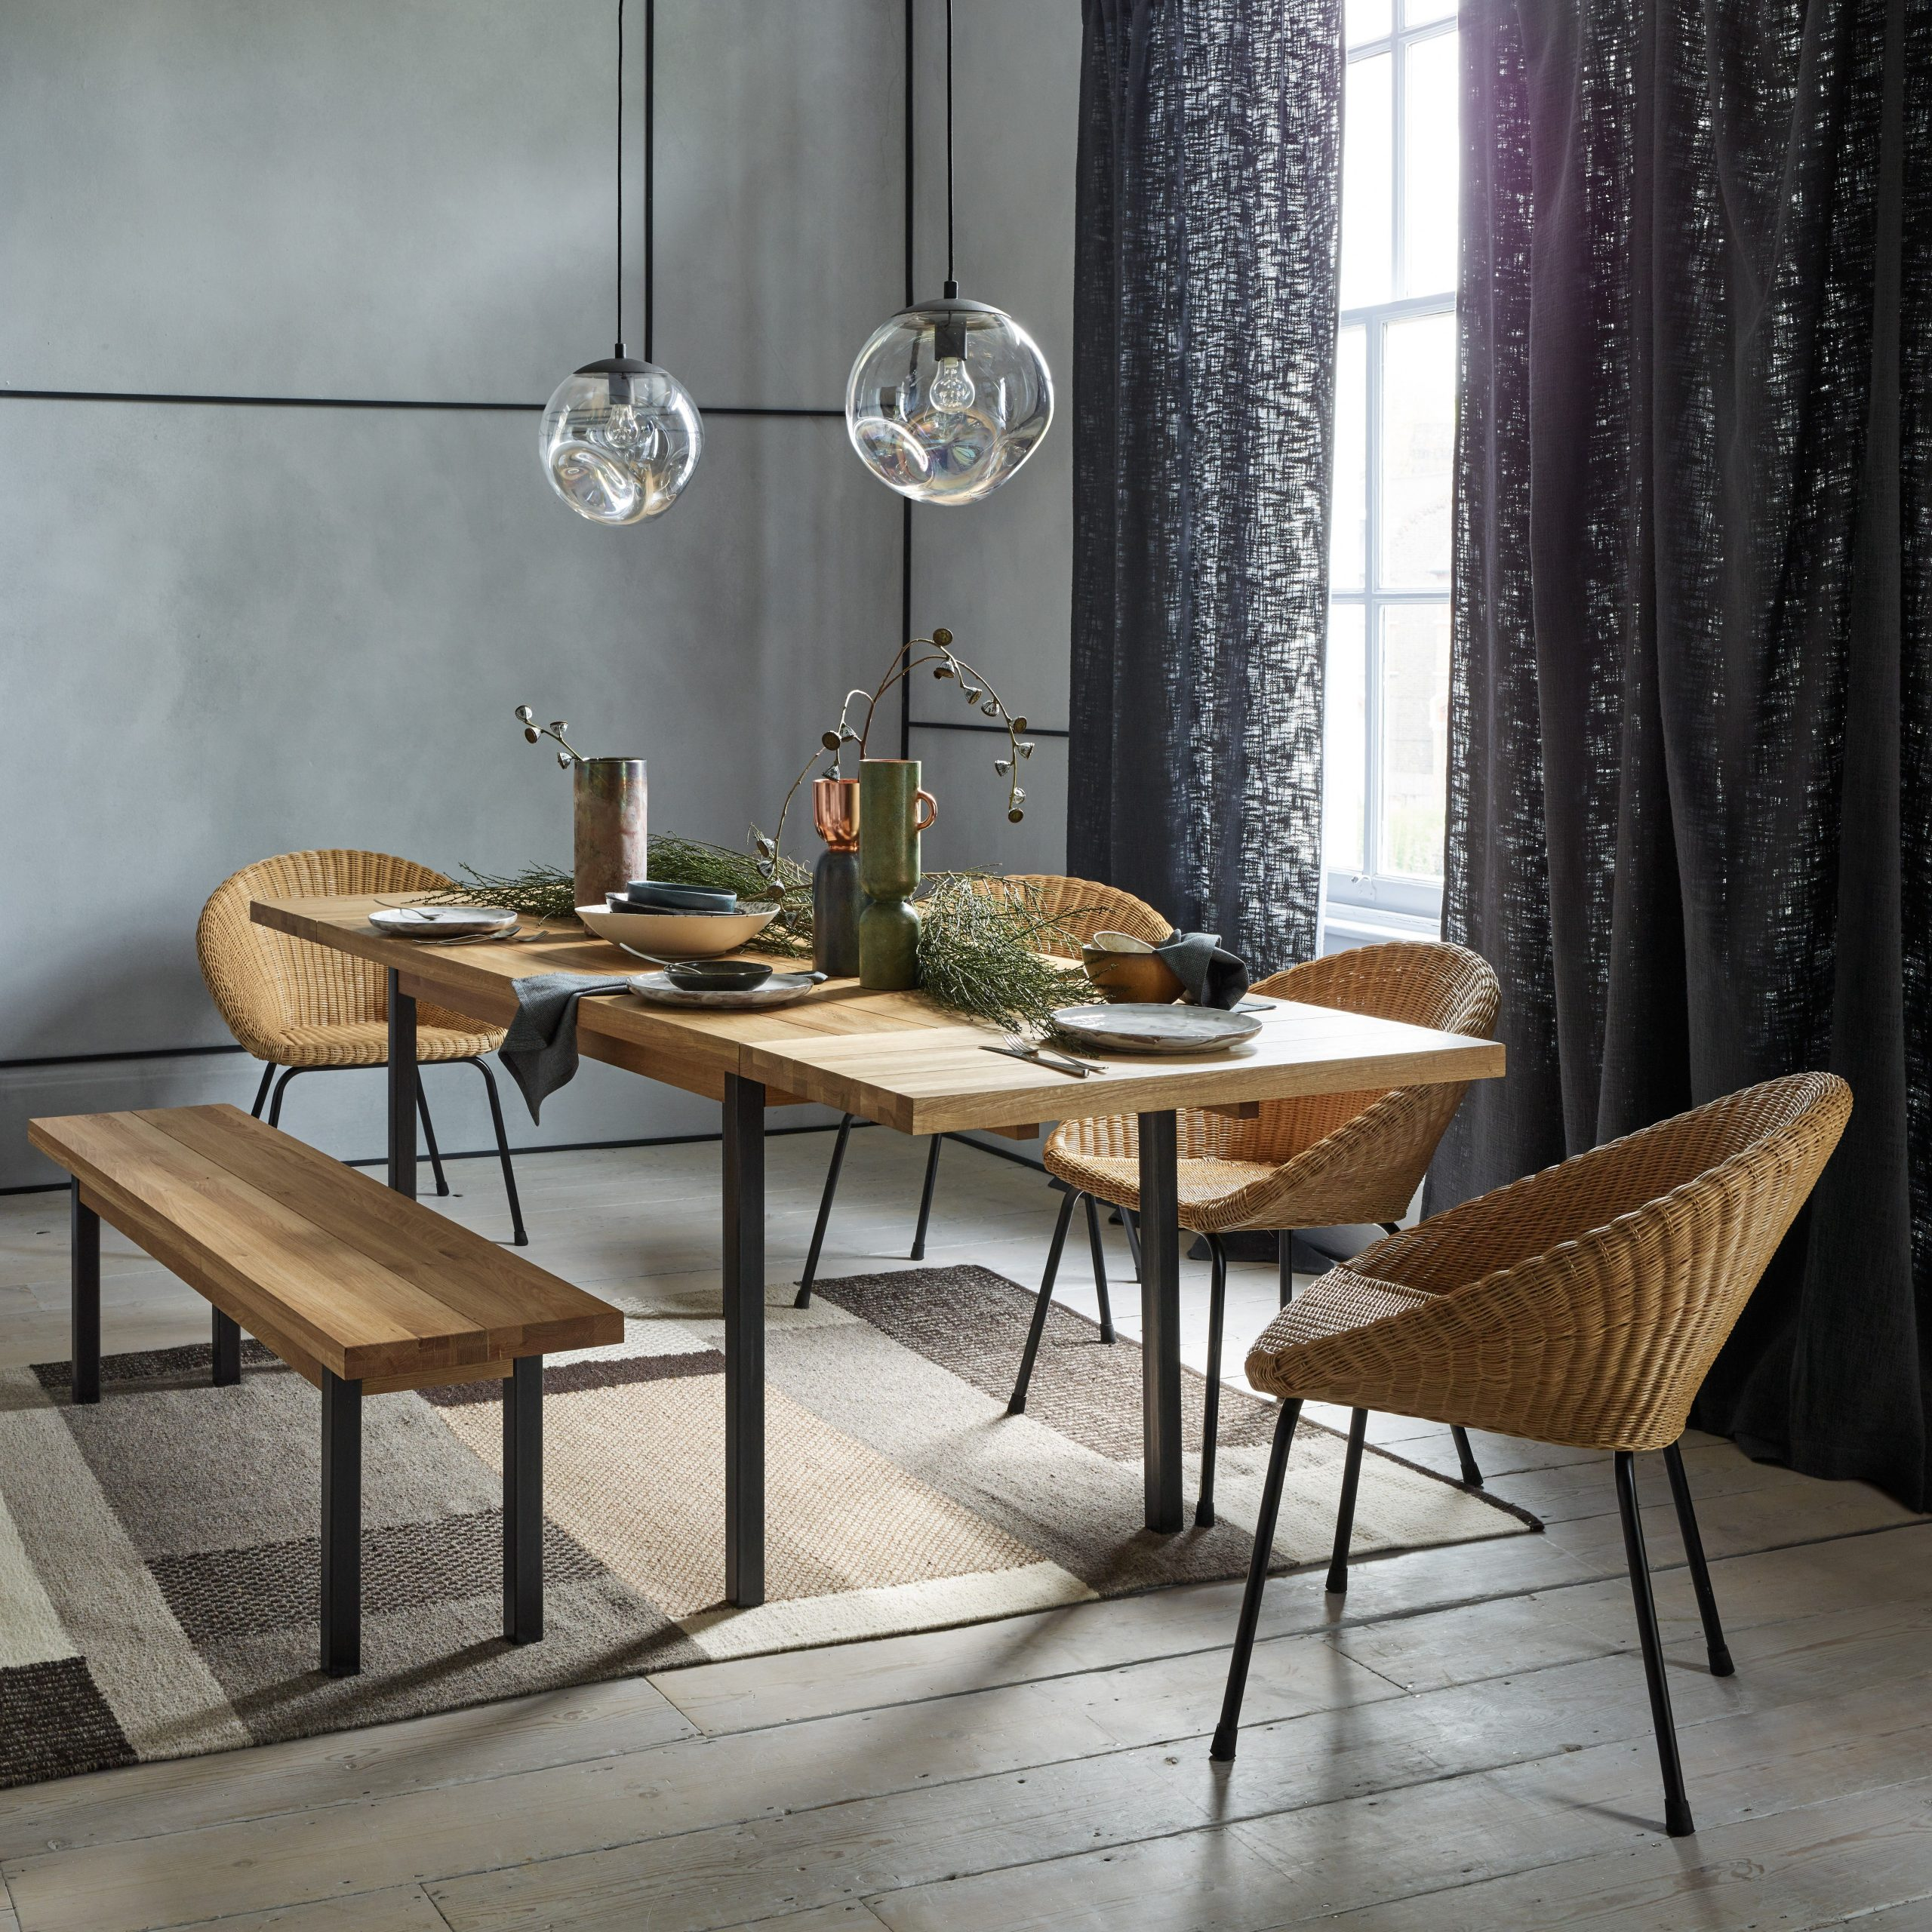 Preferred Feliz 6 12 Seater Solid Oak Extending Dining Table Within Rustic Mid Century Modern 6 Seating Dining Tables In White And Natural Wood (View 9 of 30)